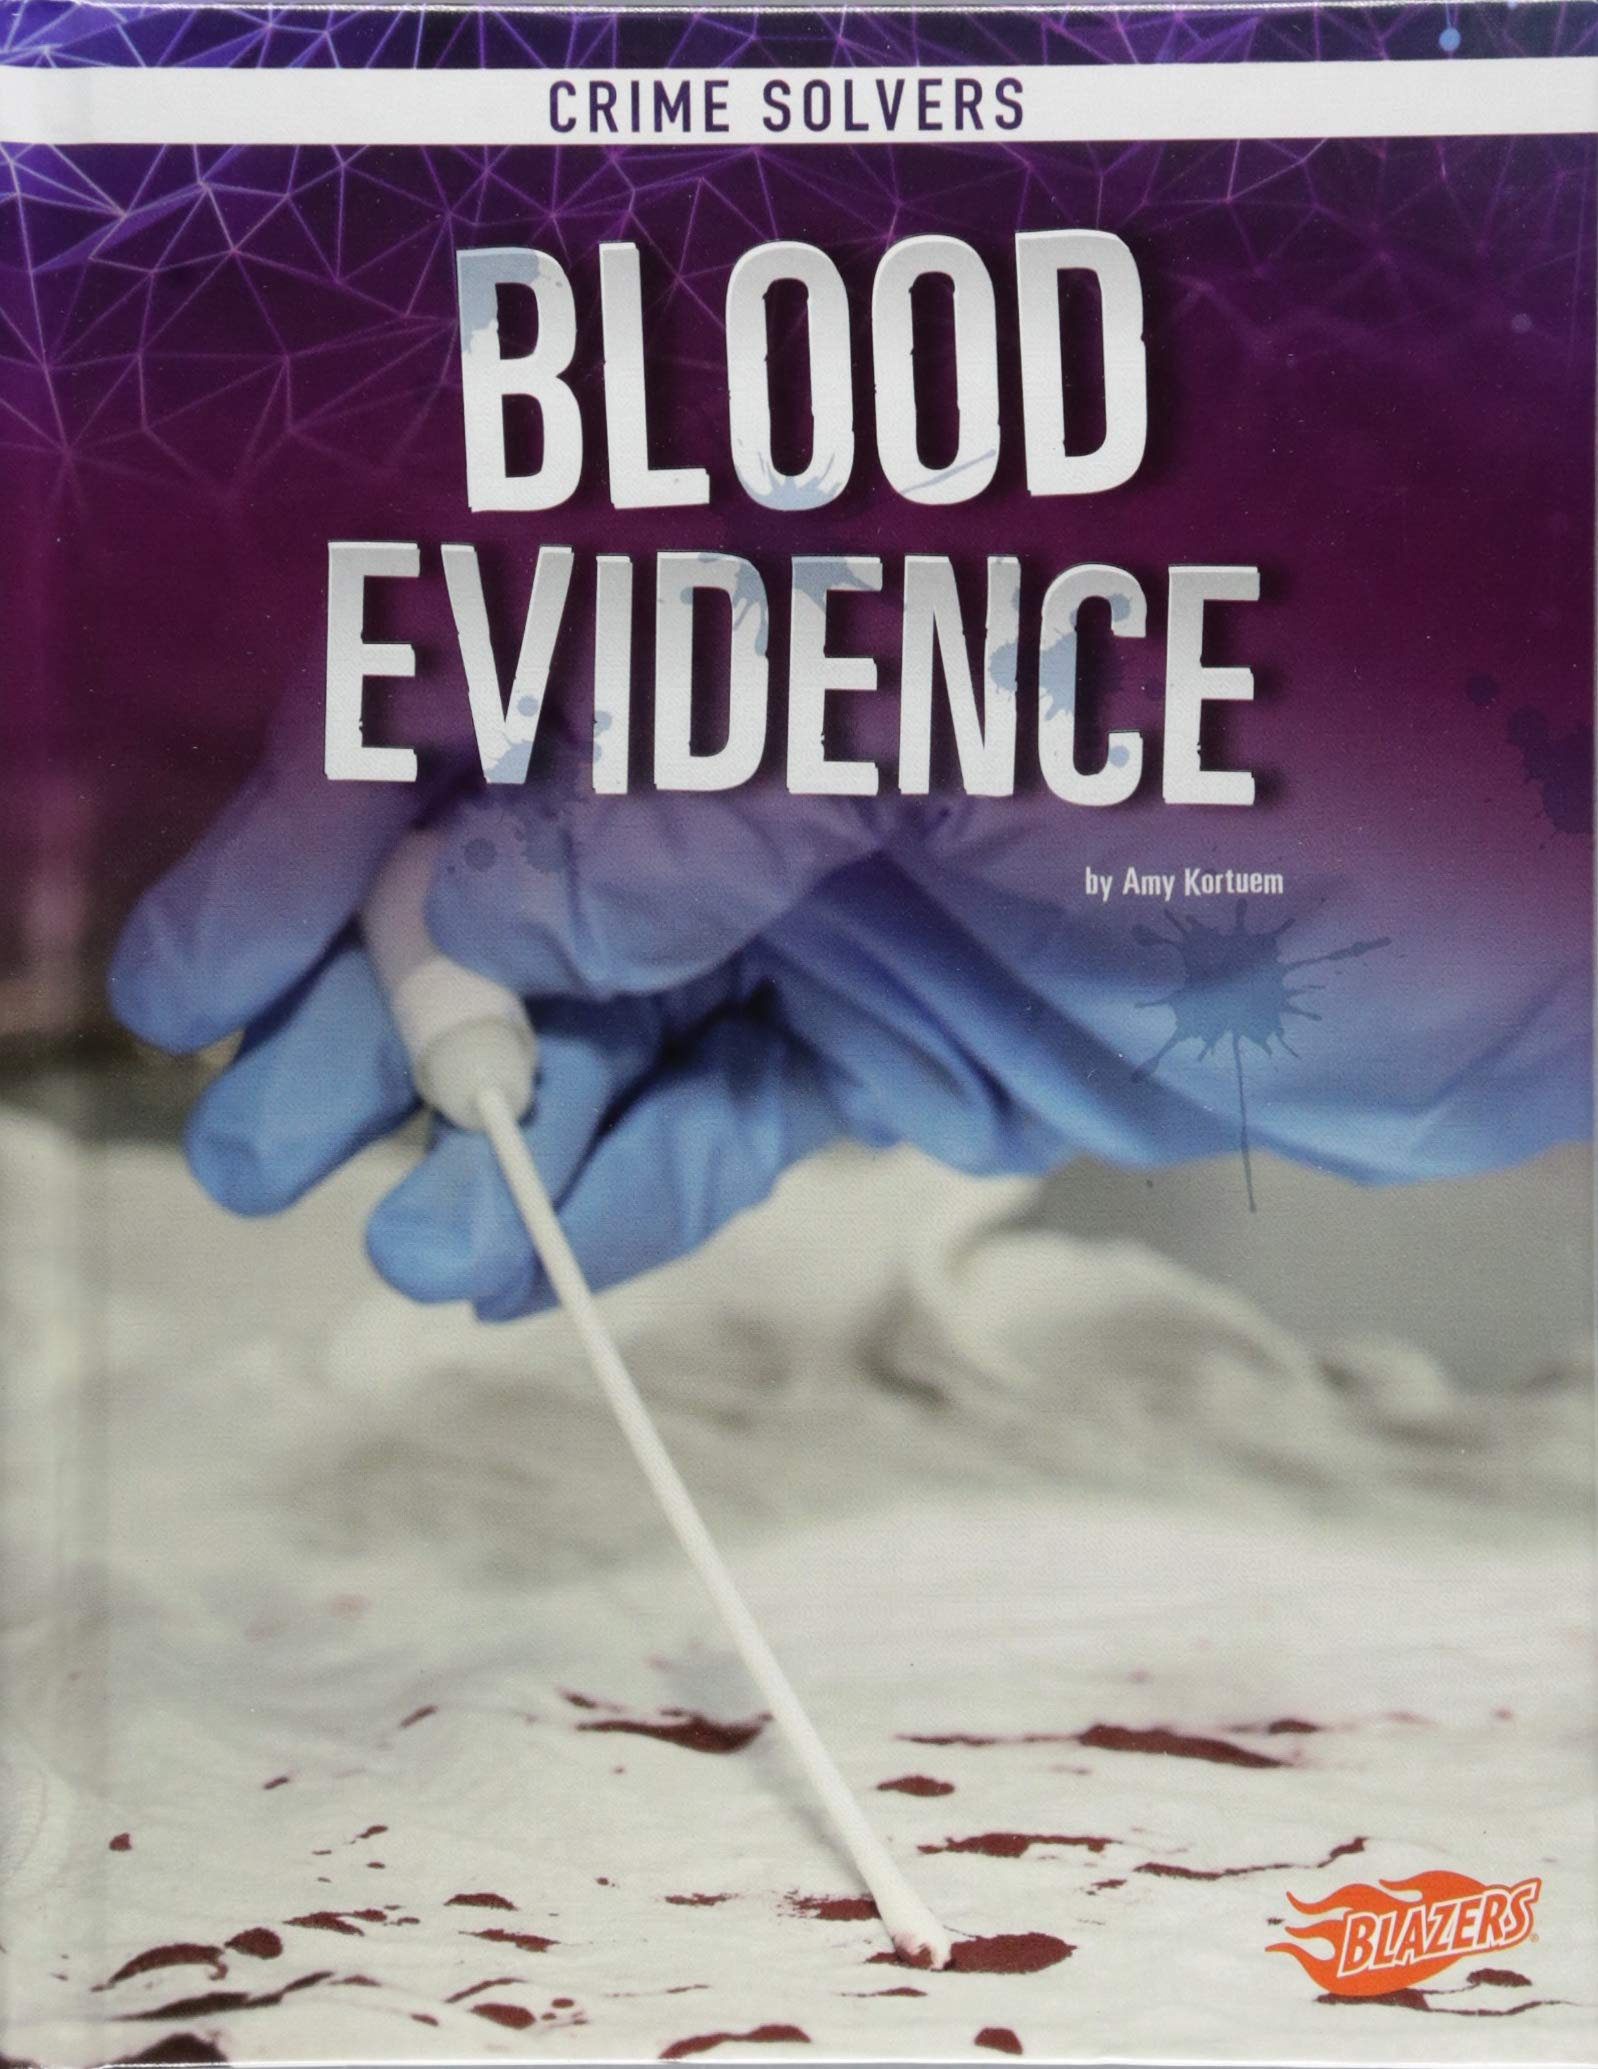 Blood Evidence (Crime Solvers)